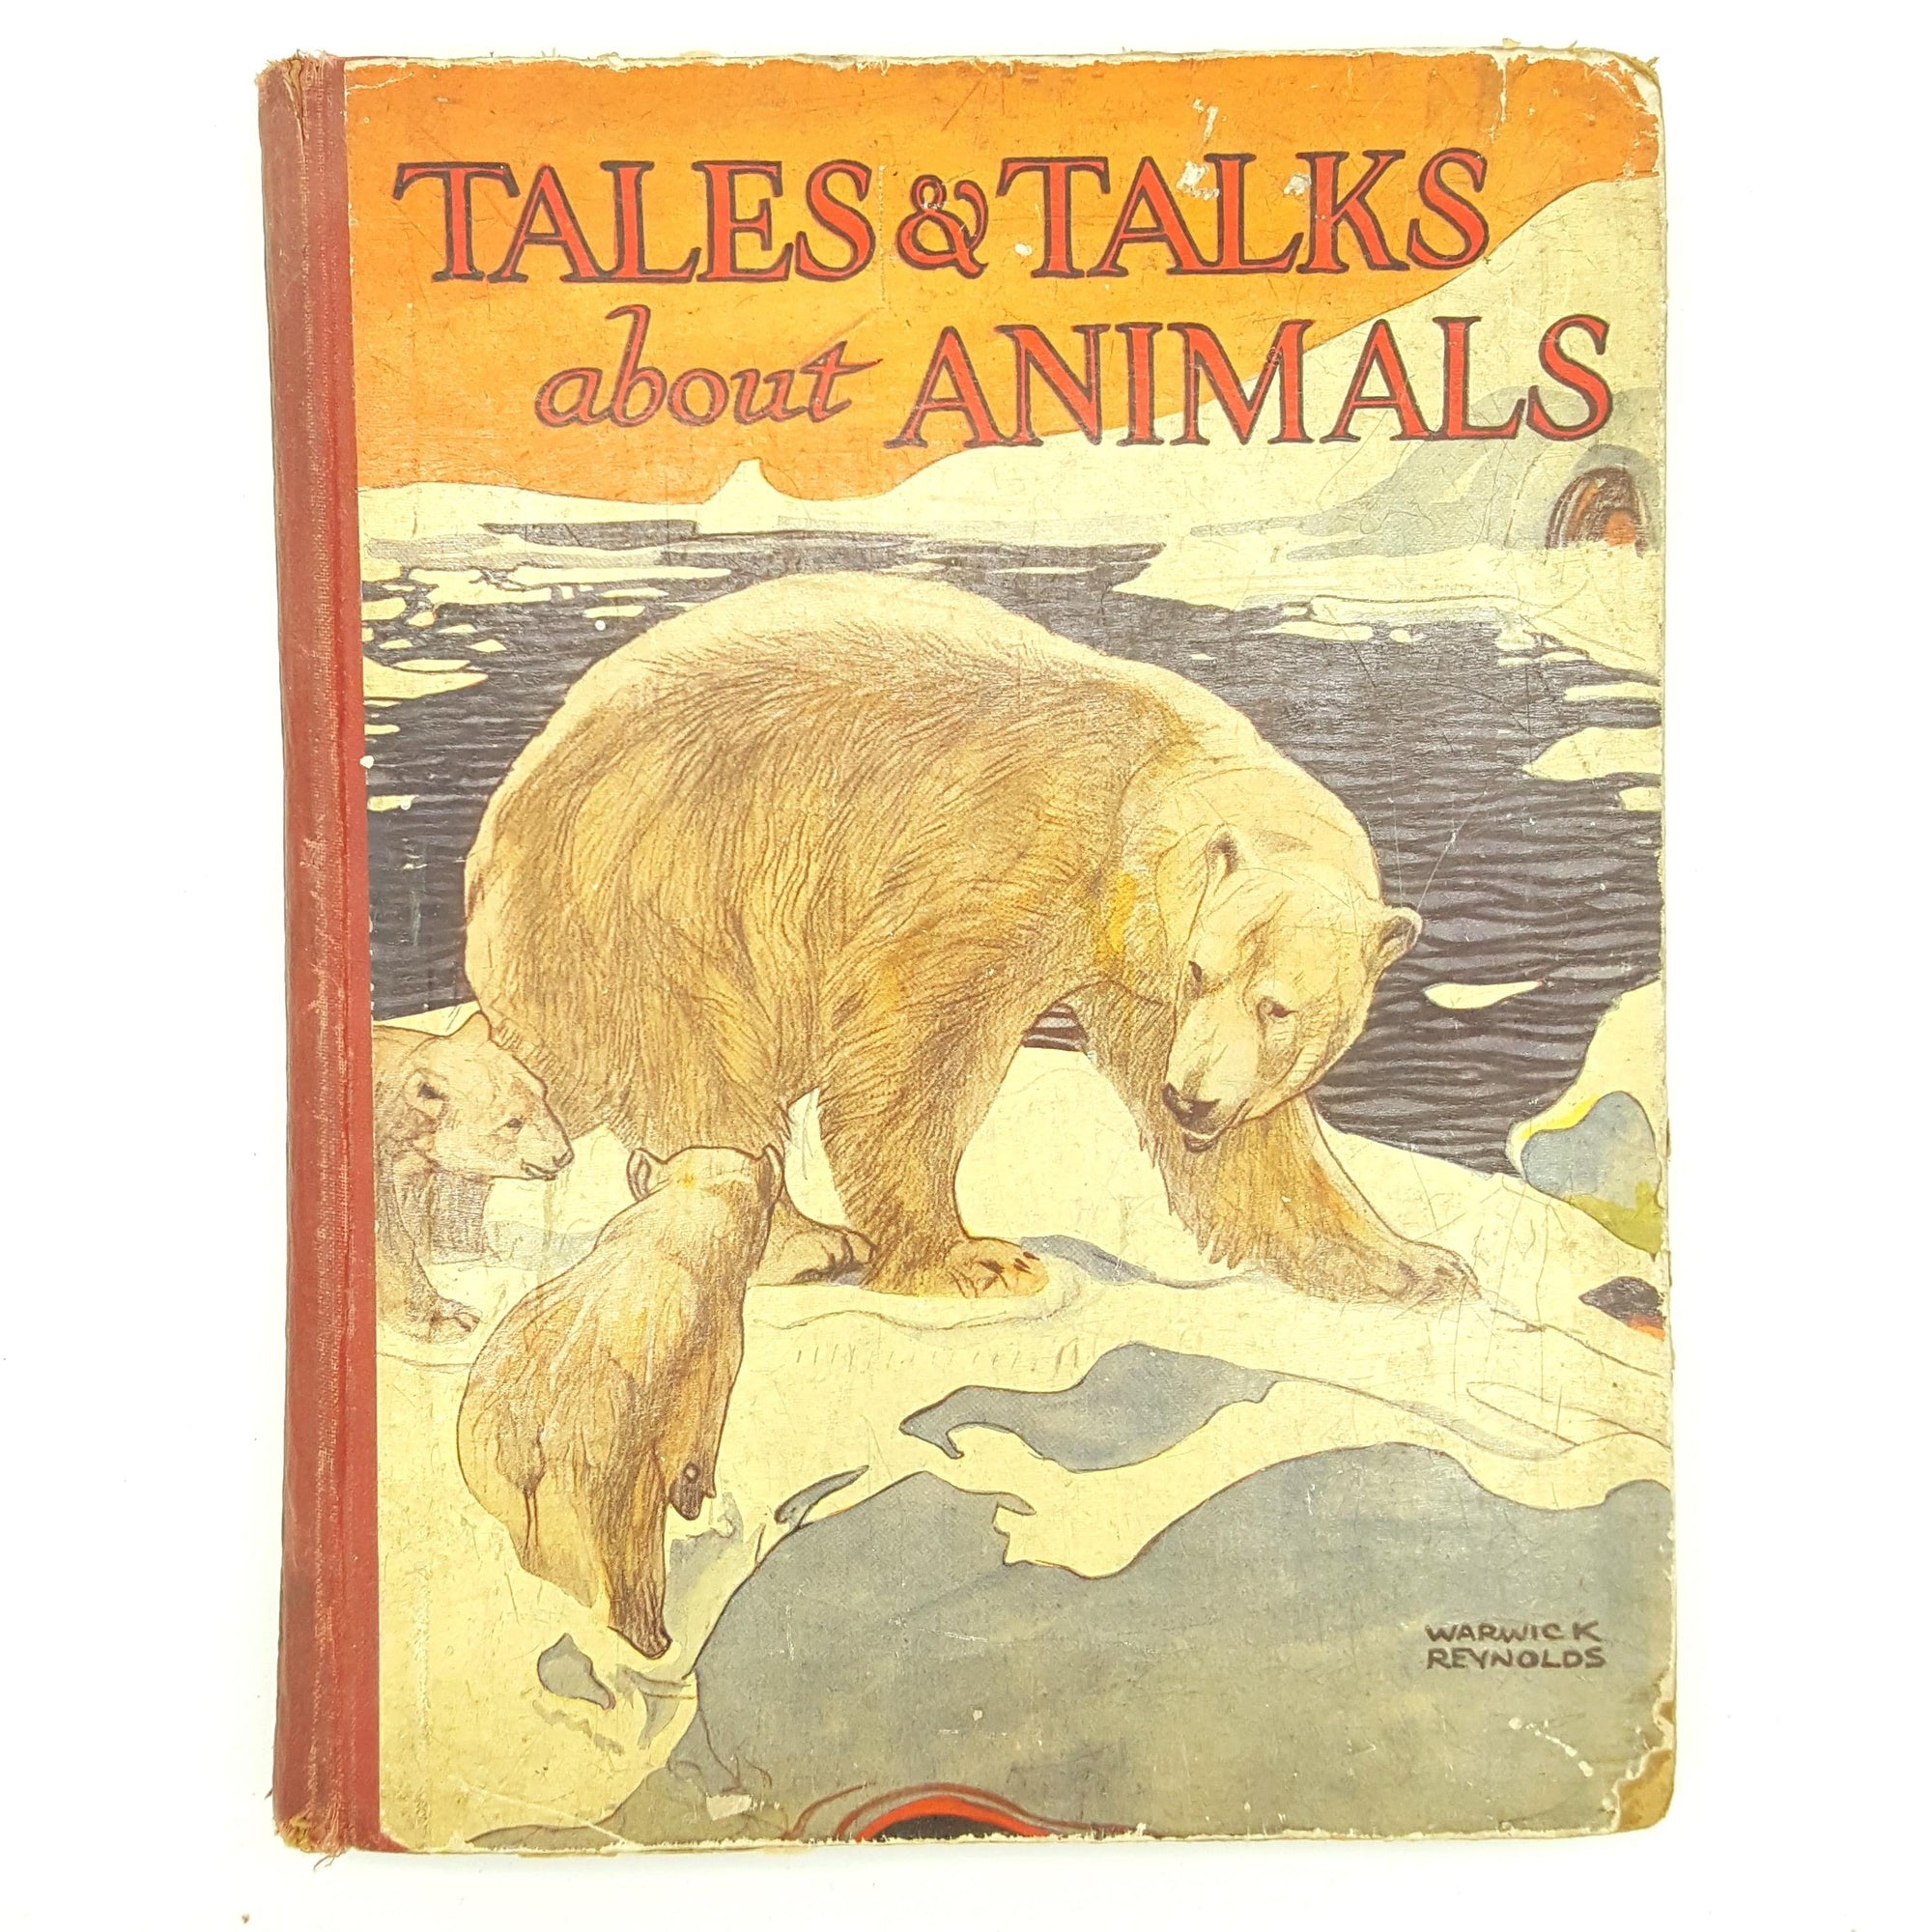 Tales & Talks about Animals 1928